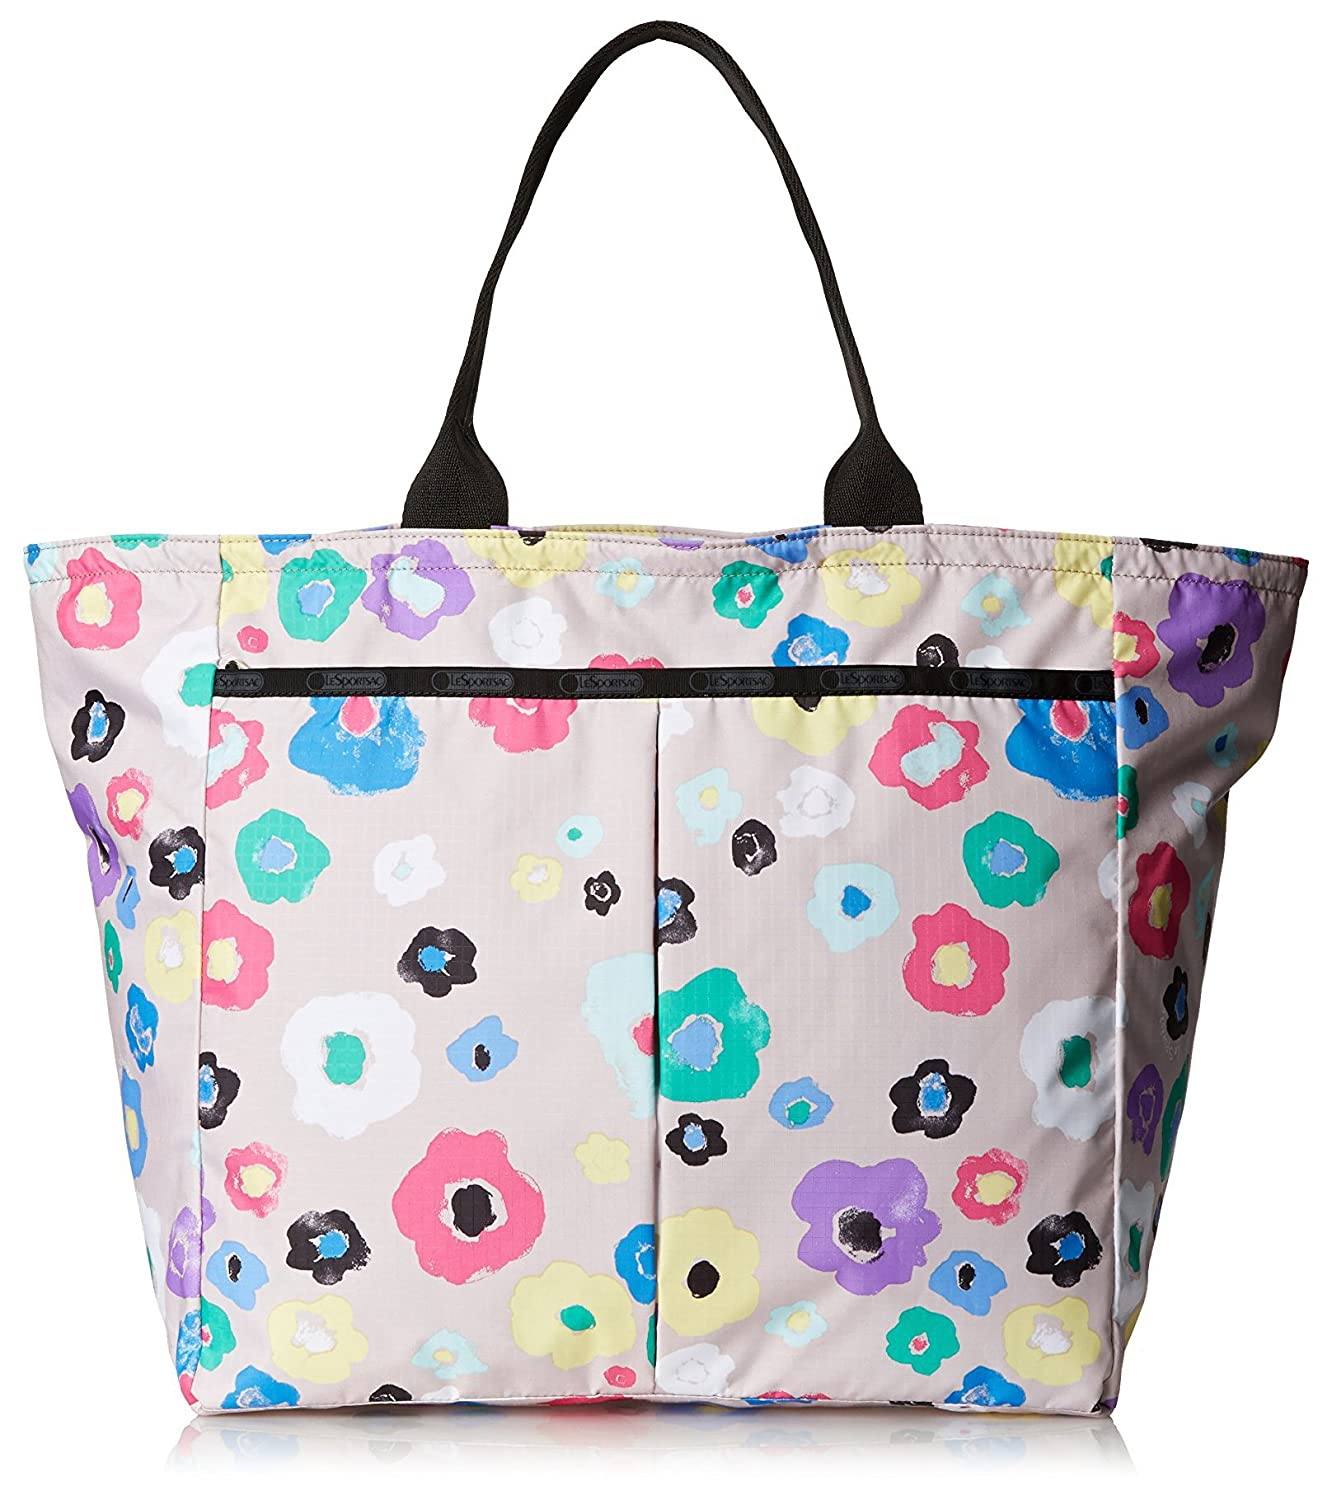 LeSportsac Women's Deluxe Everygirl Tote, Tuileries